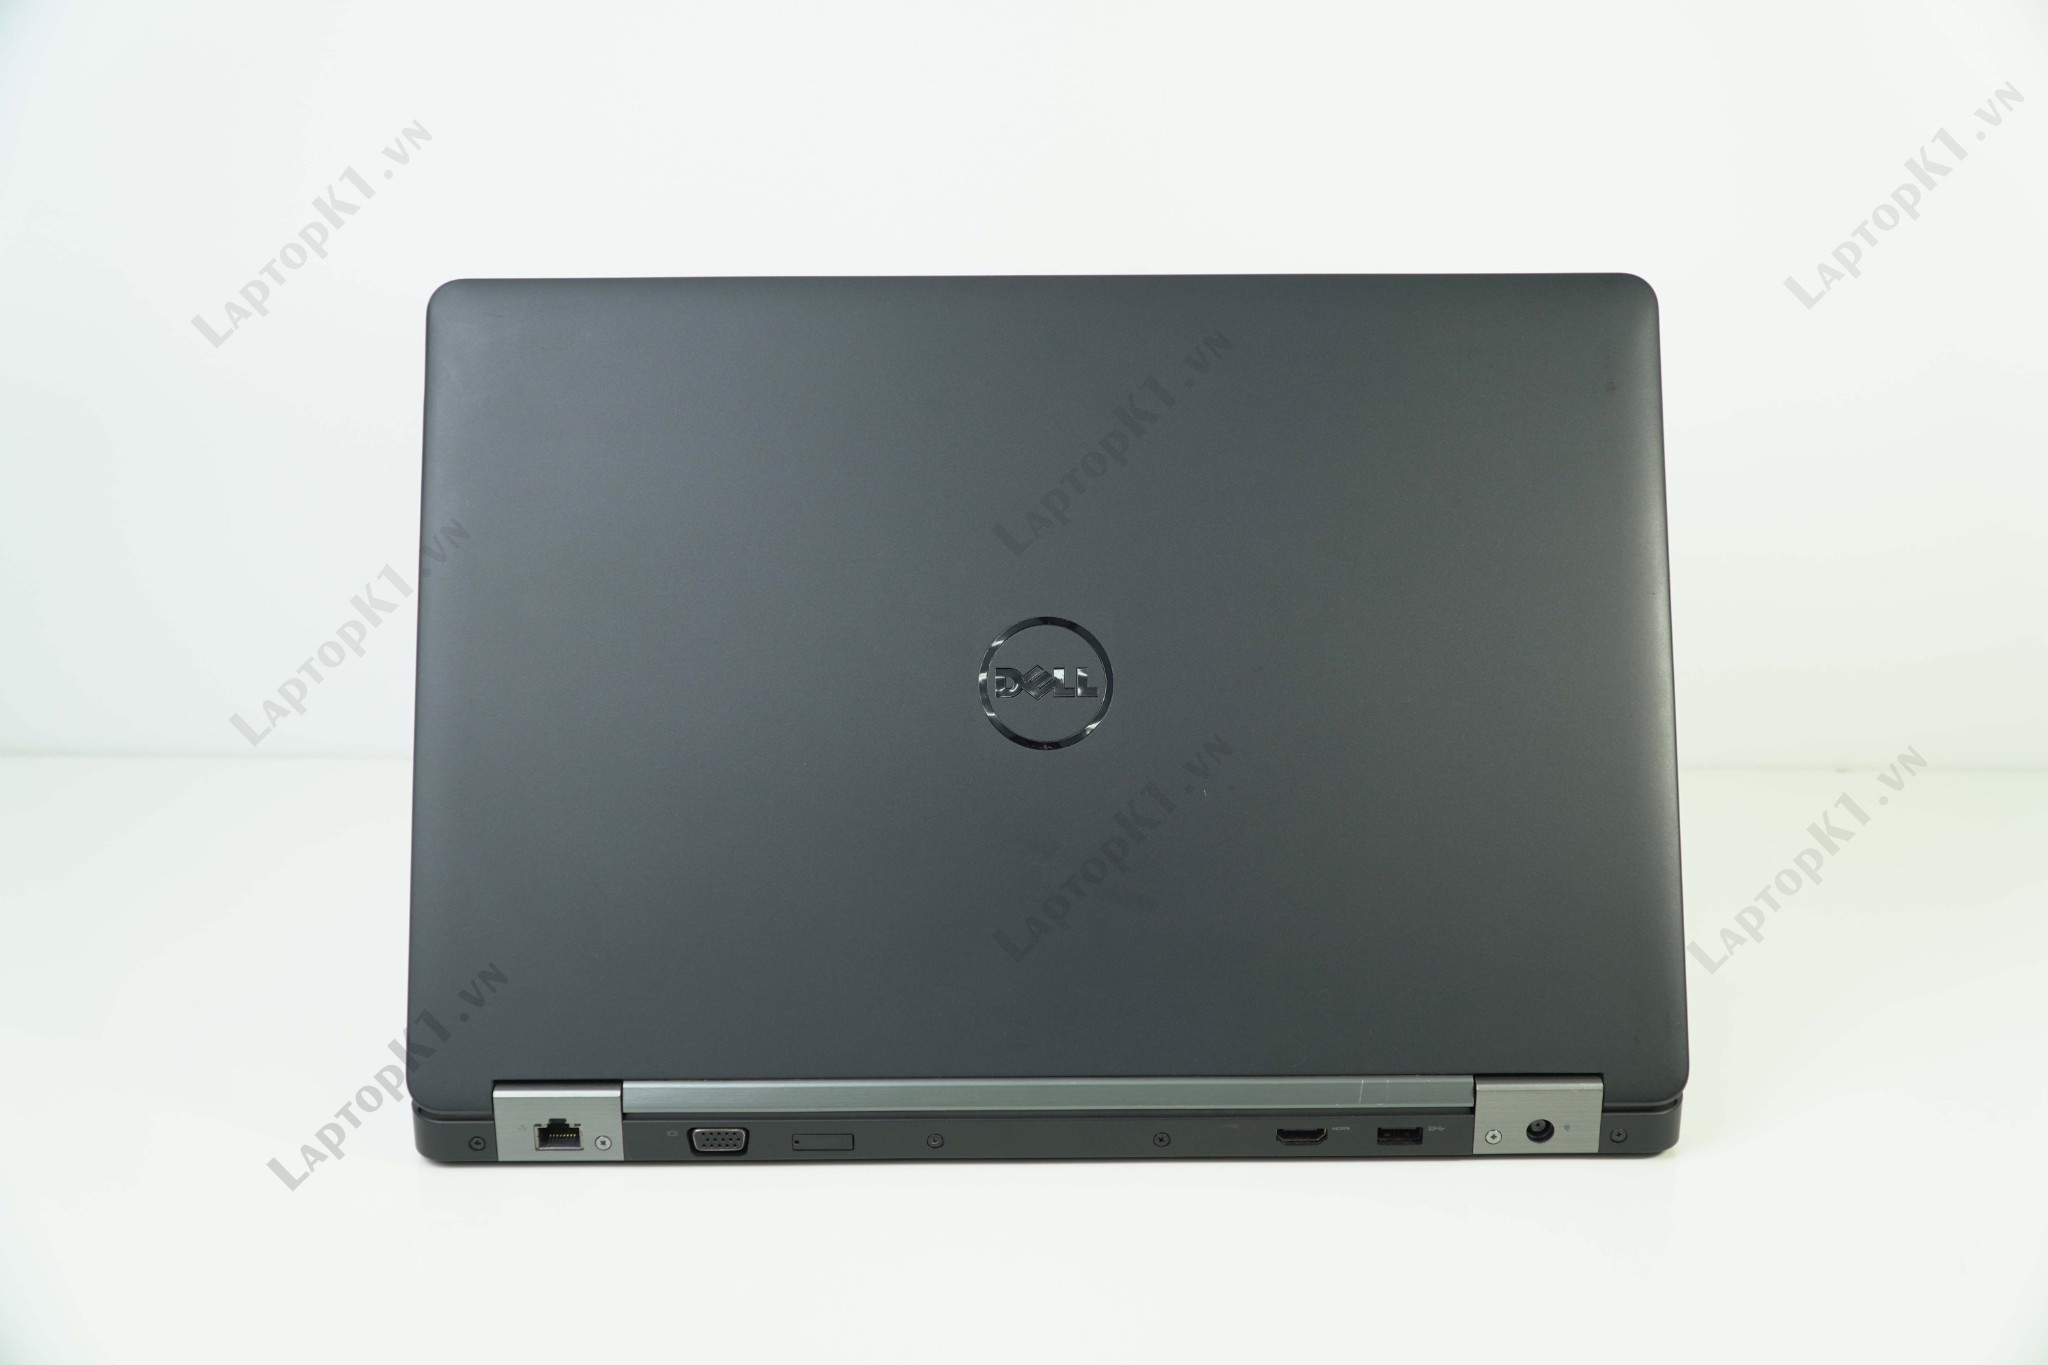 LAPTOP WORKSTATION Dell Precision 3510 - Intel Core i7